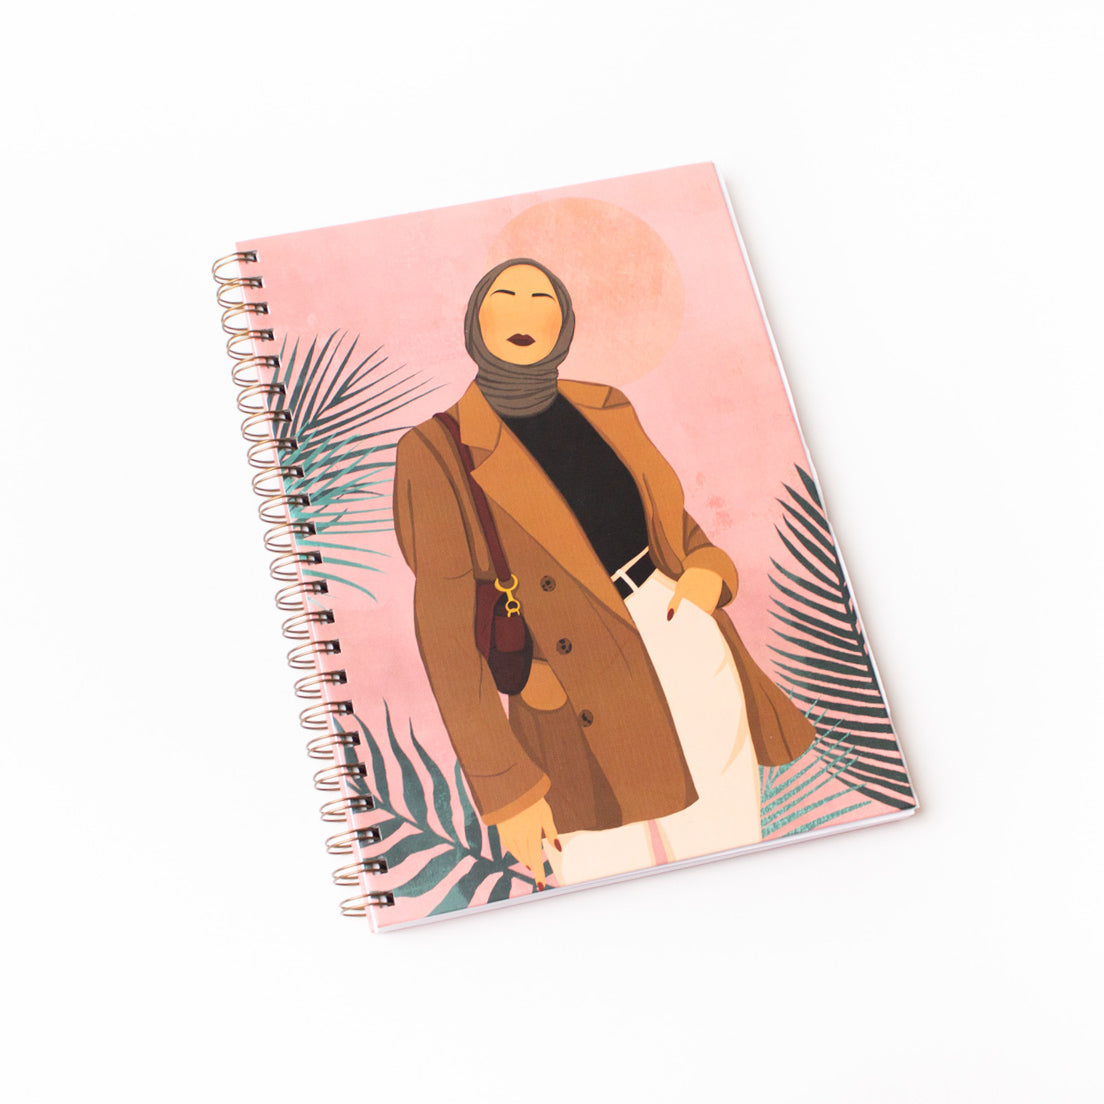 The Modest Girl A4 Hardback Notebook